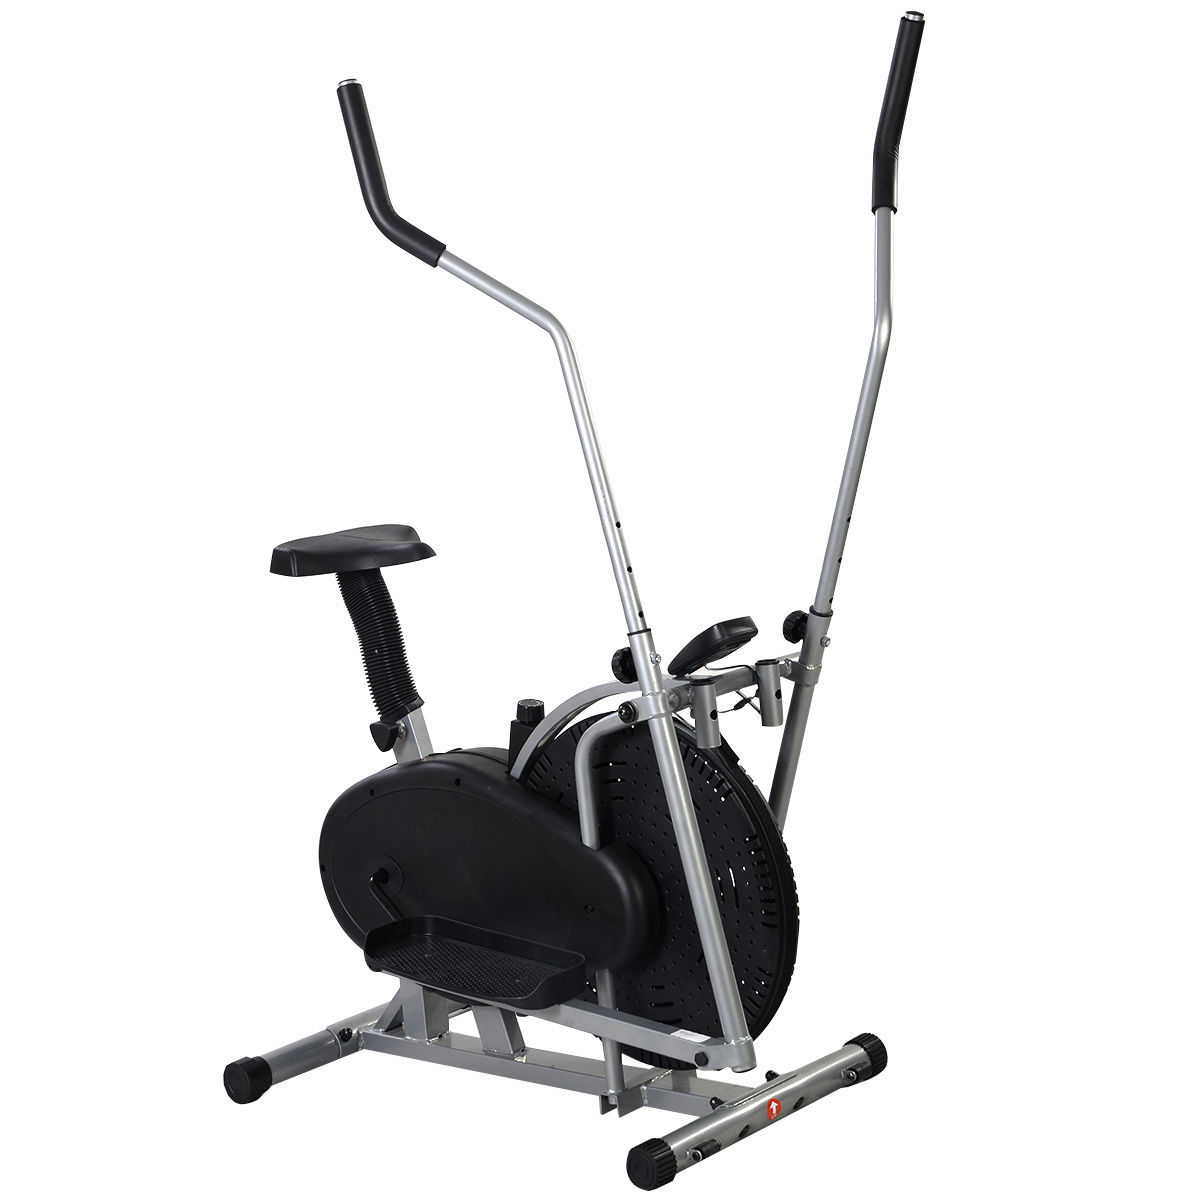 elliptical bike 2 in 1 cross trainer exercise fitness machine home workout